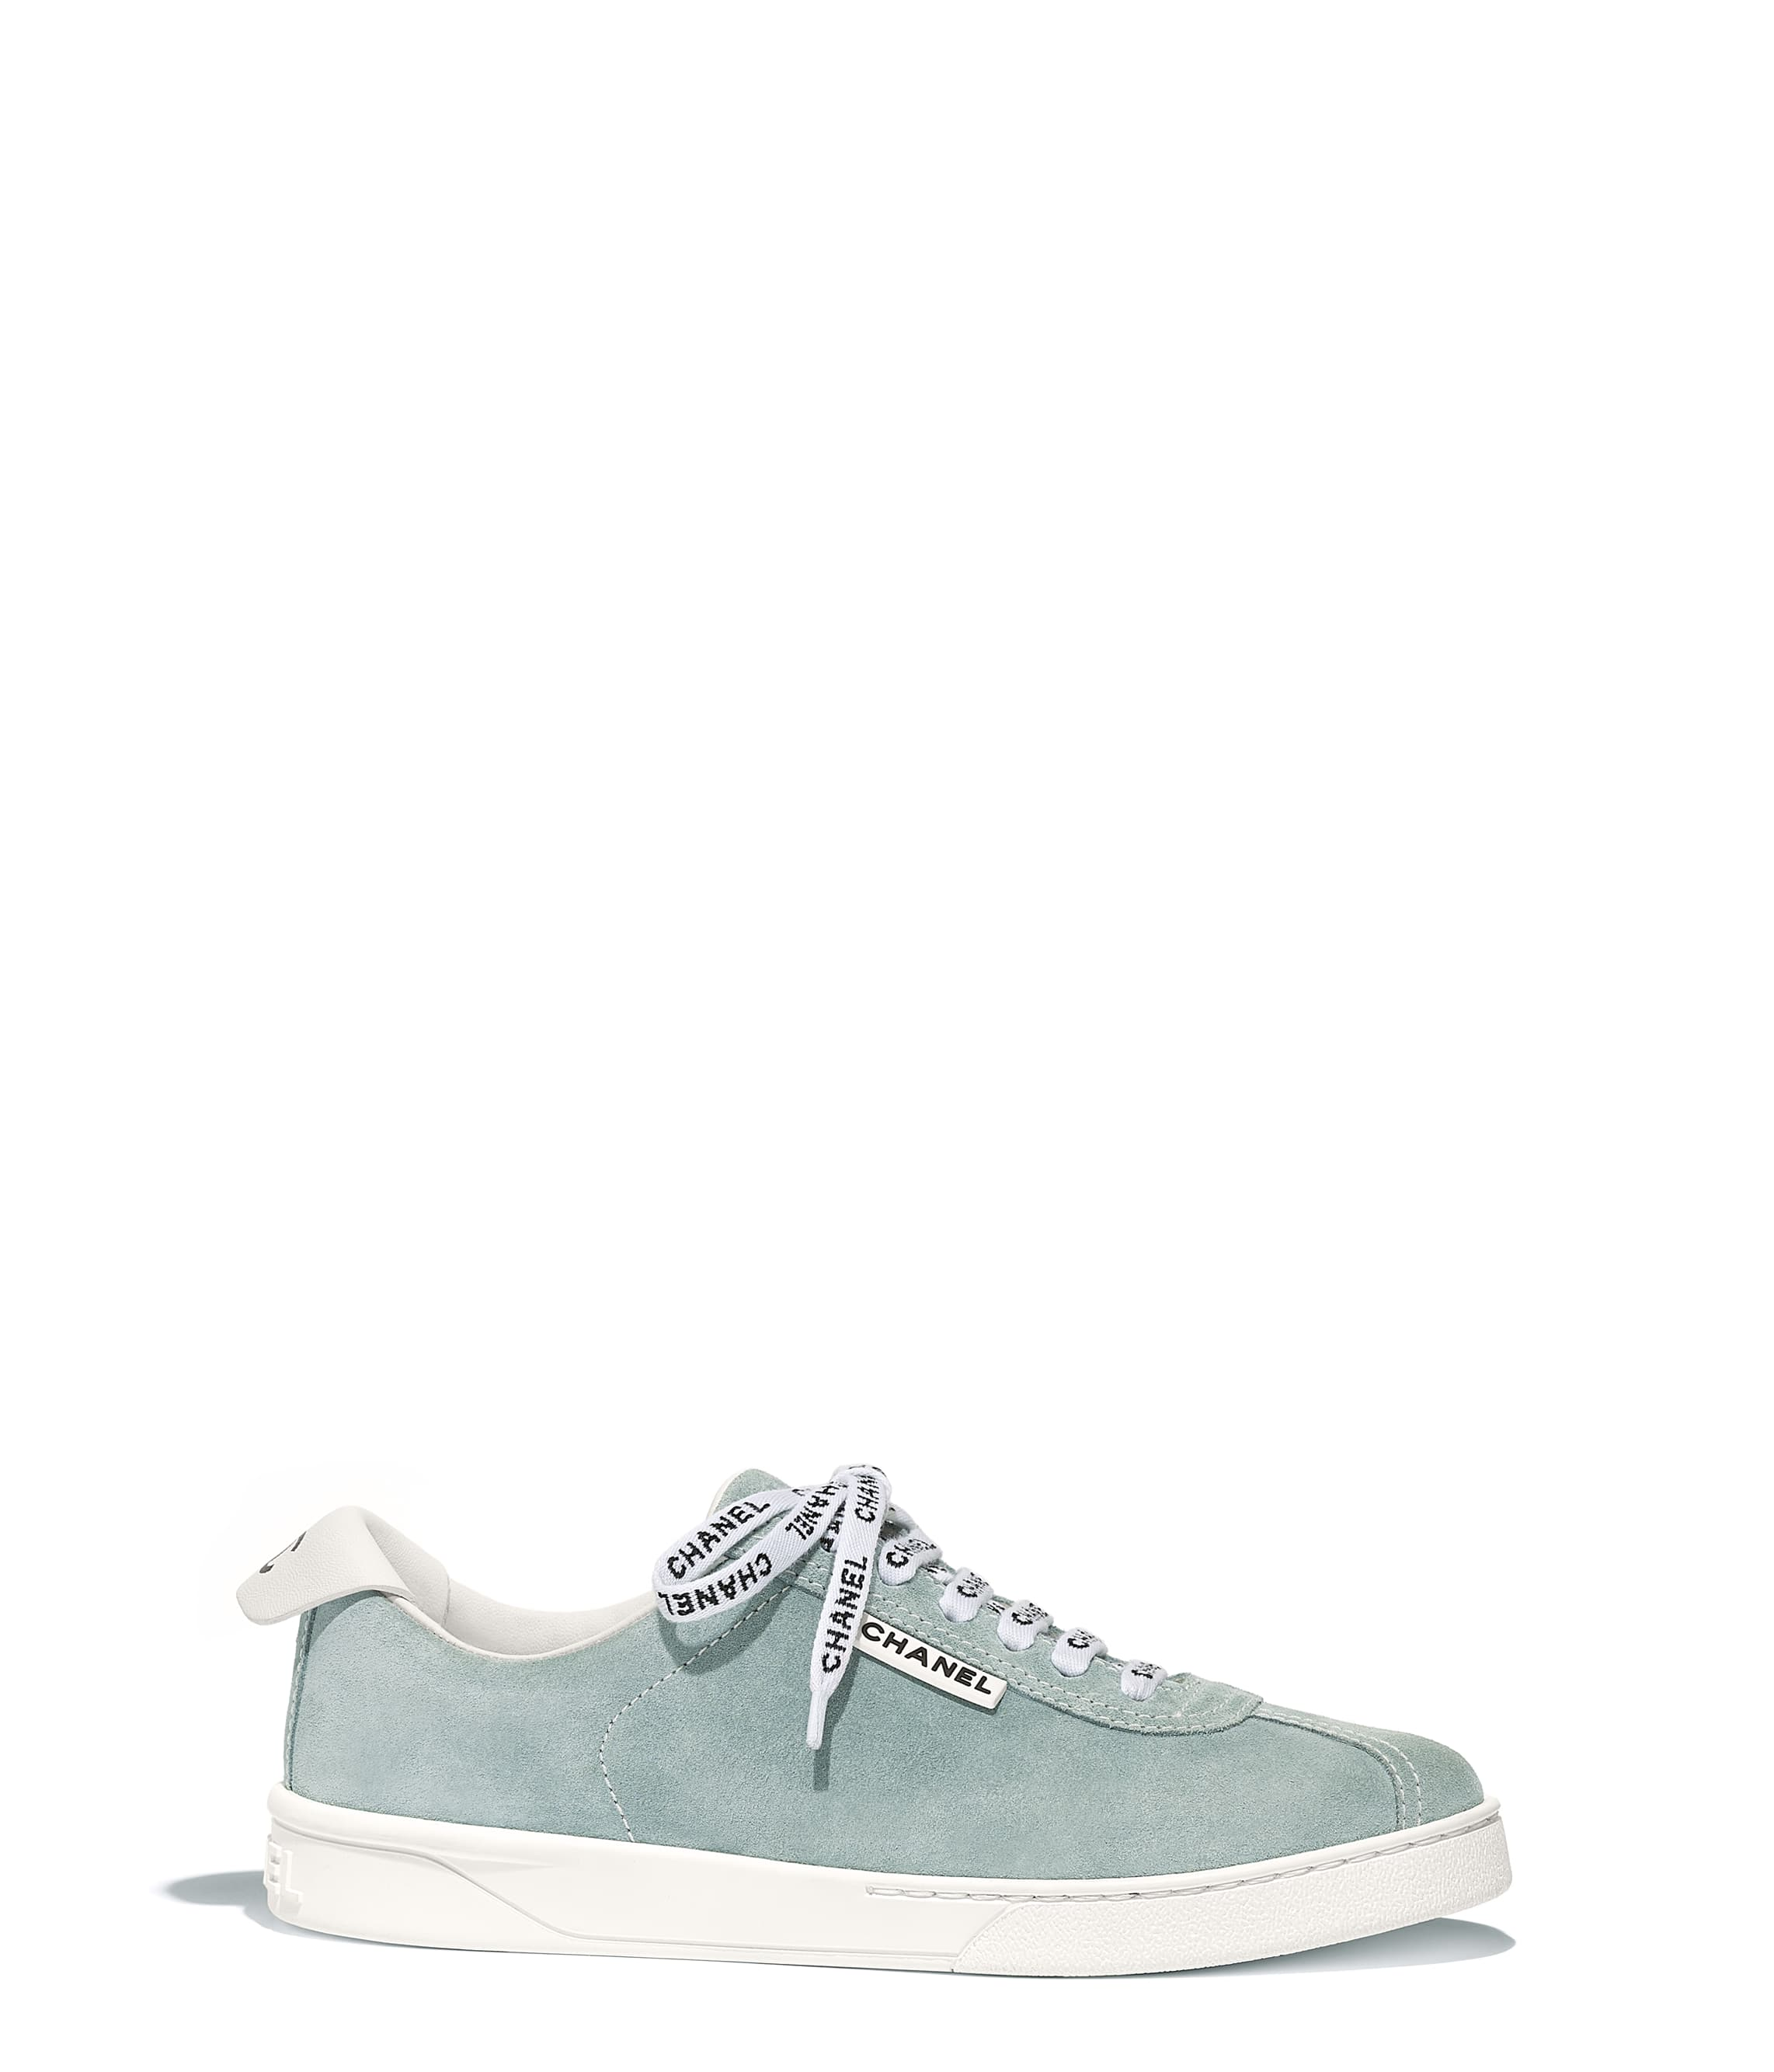 Sneakers Shoes Chanel Blue